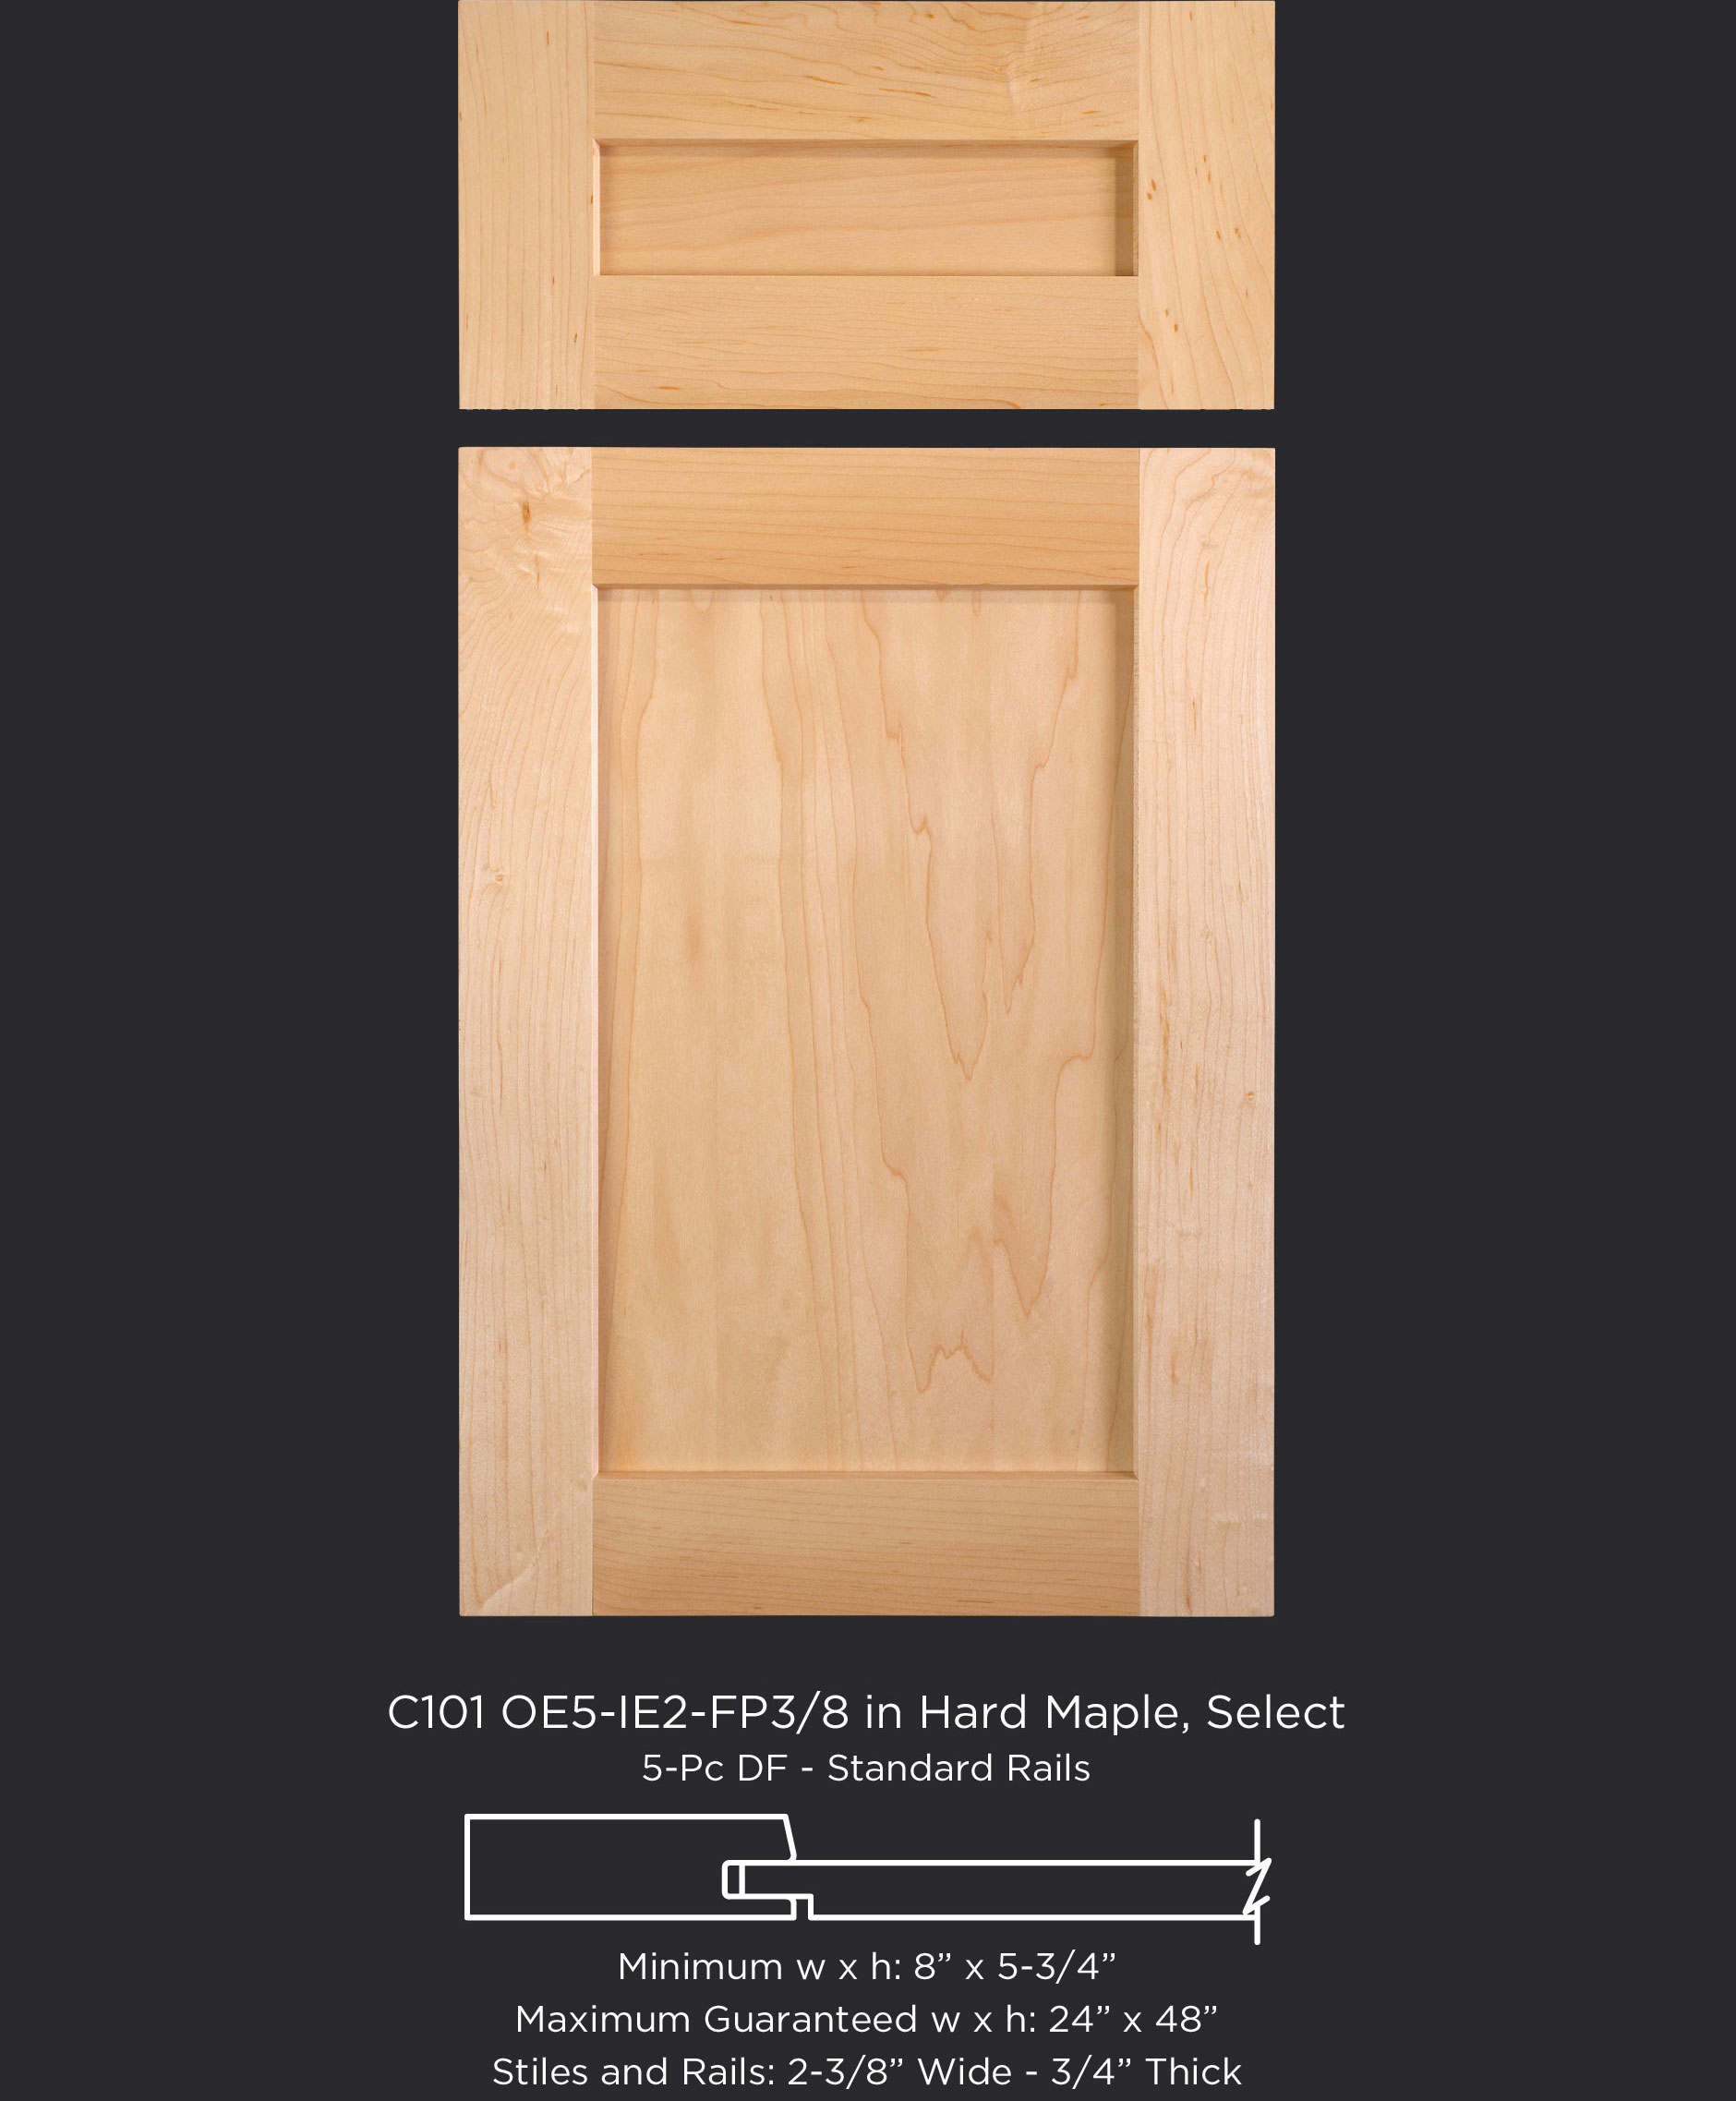 Cope and Stick Cabinet Door C101 OE5-IE2-FP3/8 in Hard Maple, Select and 5-piece drawer front